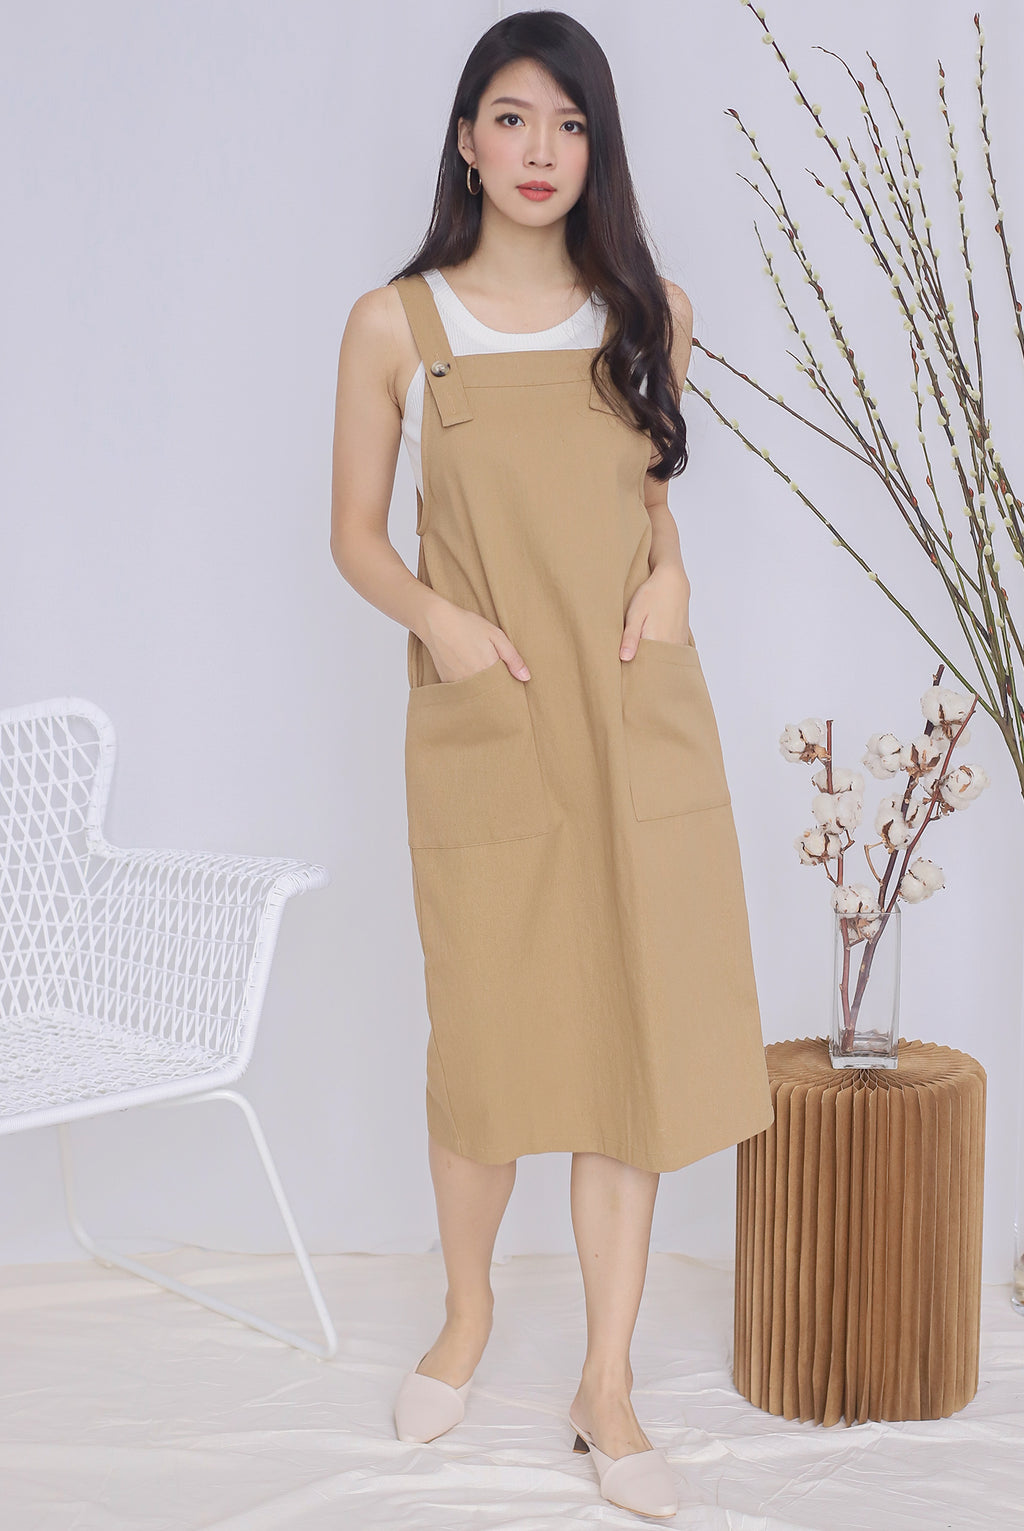 *Restocked* Blyana Dungaree Dress In Camel